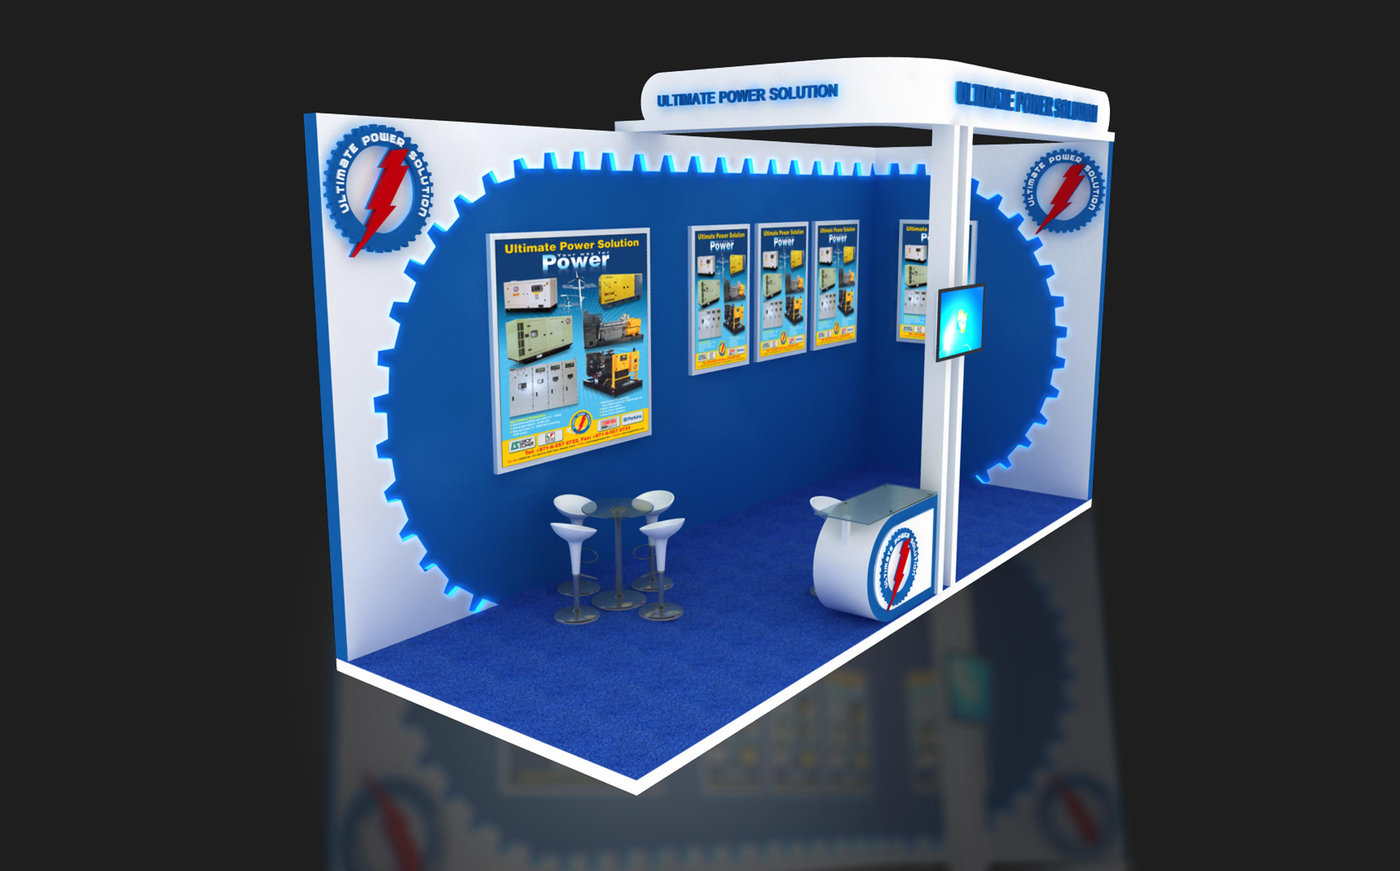 Exhibition Stand Designer Job Description : Exhibition stand designs by saleem ali at coroflot